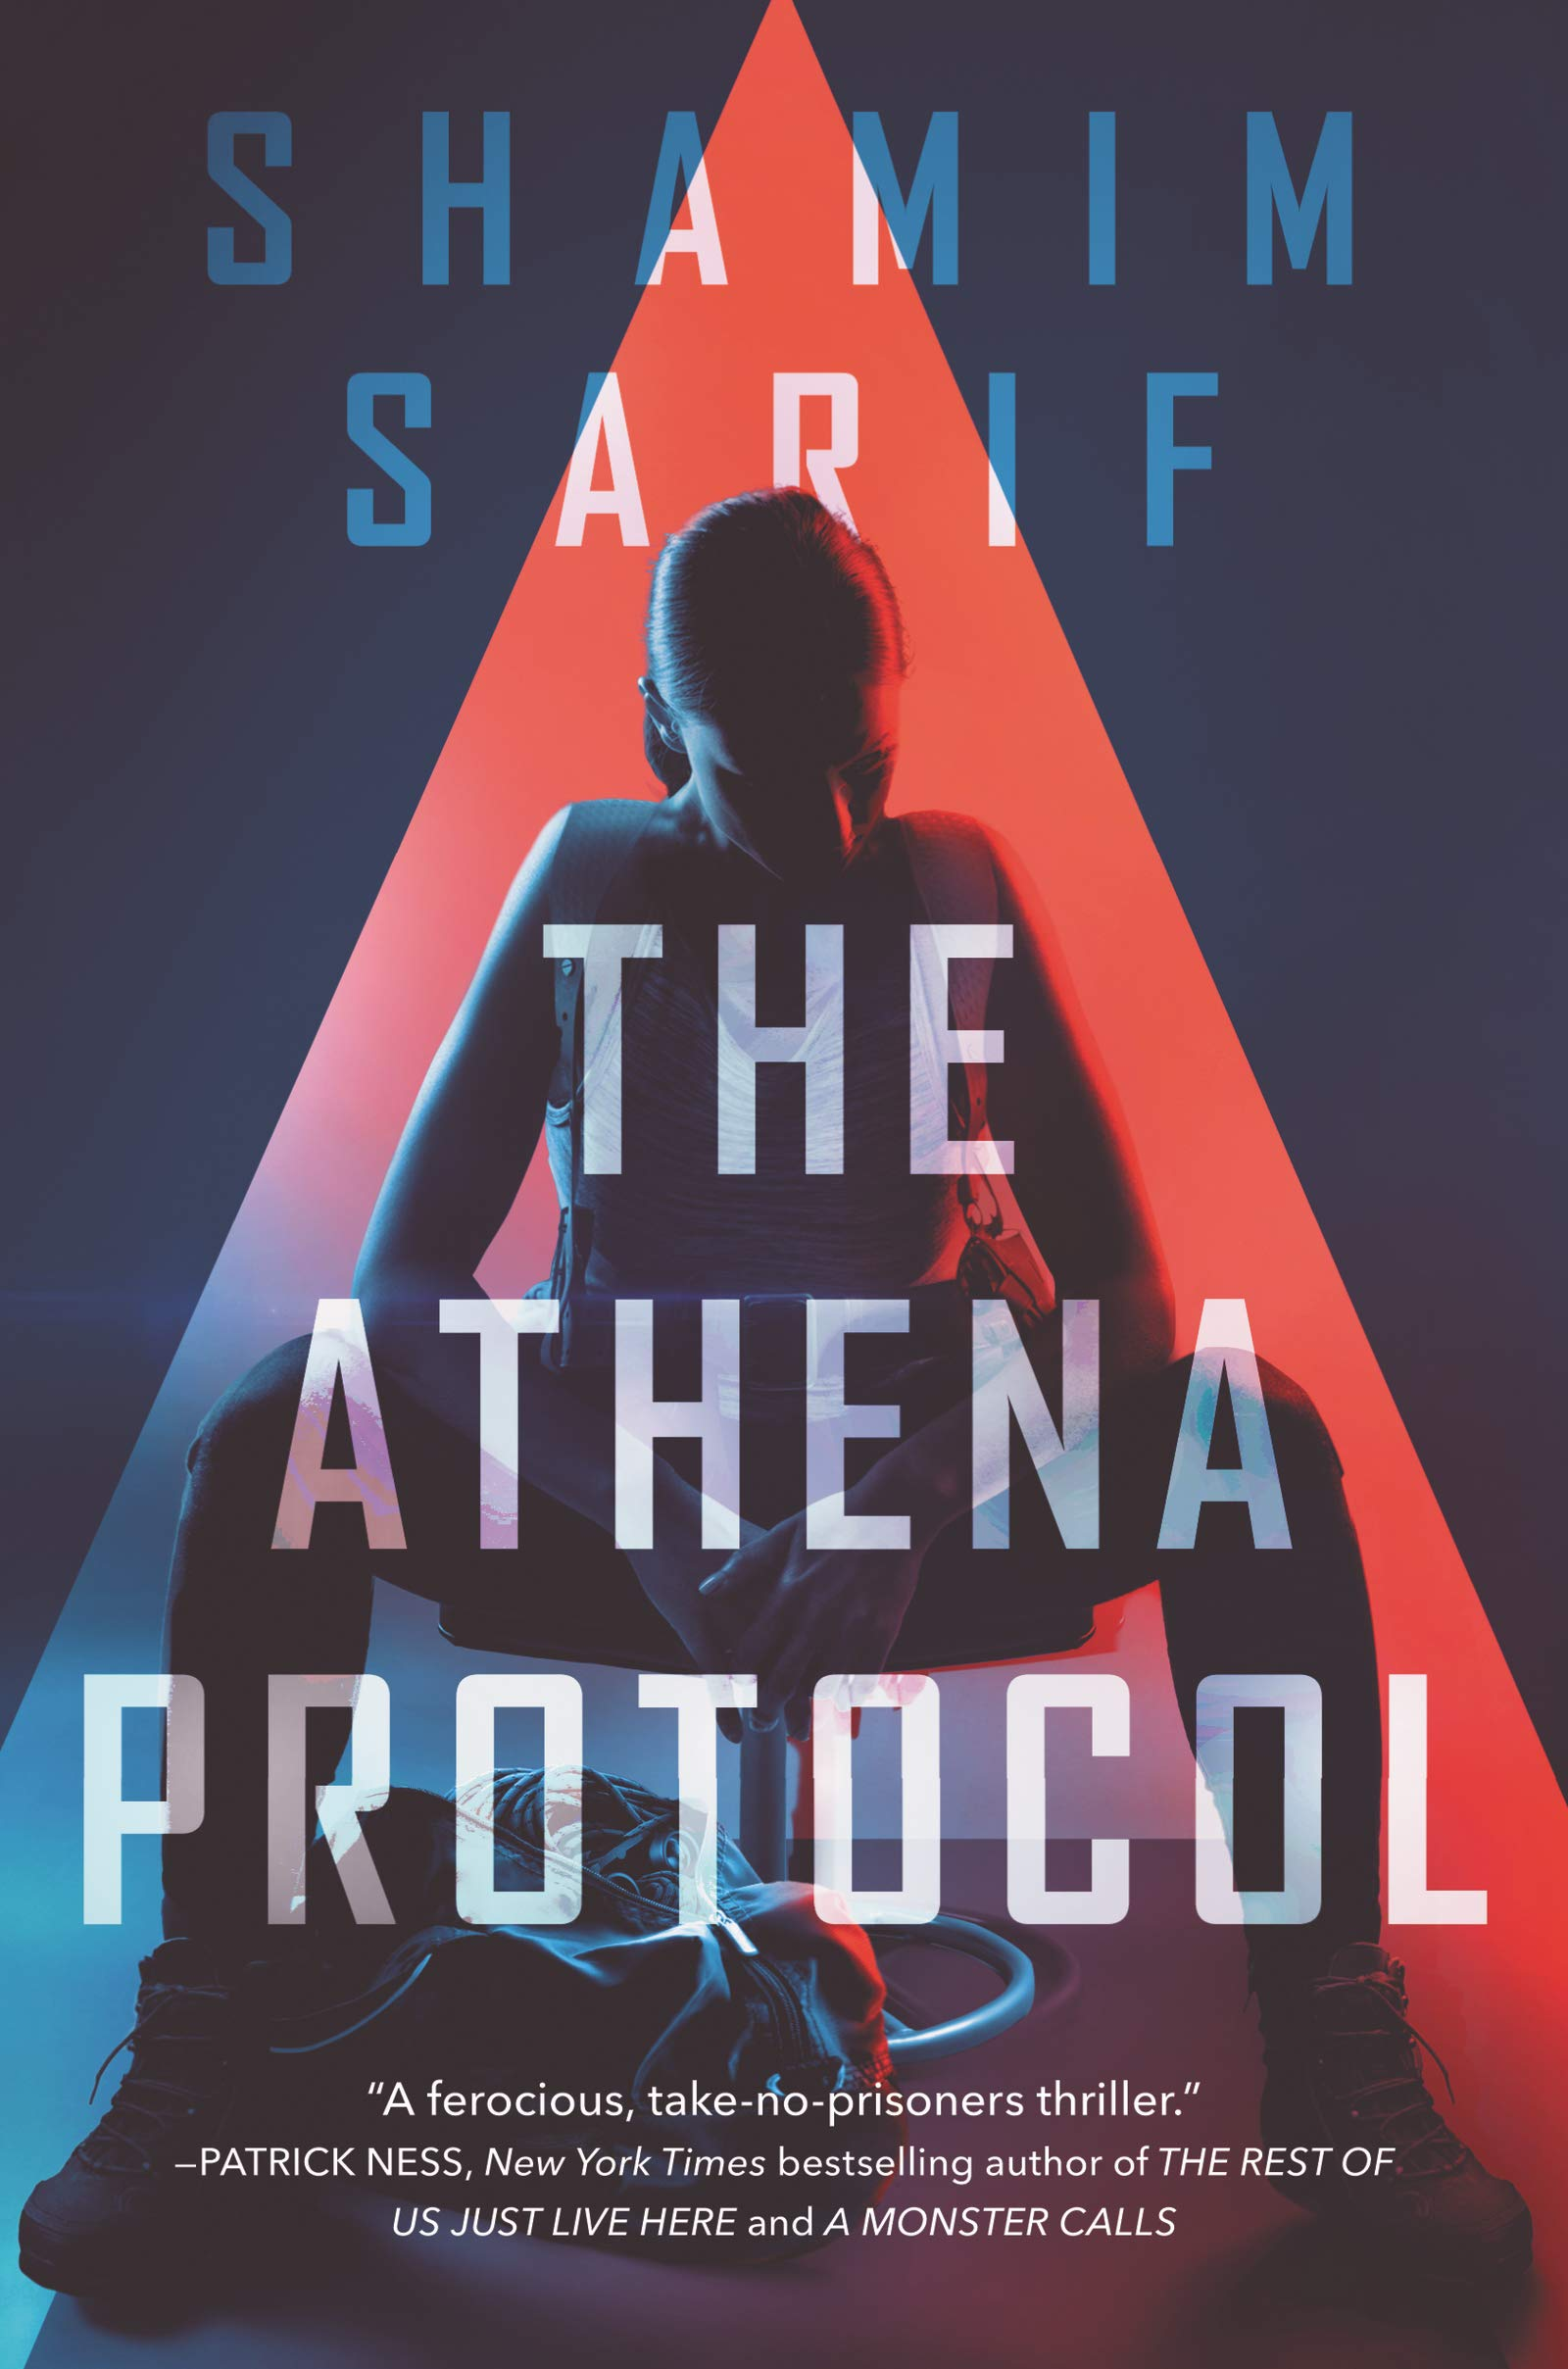 Amazon.com: The Athena Protocol (9780062849601): Sarif, Shamim: Books